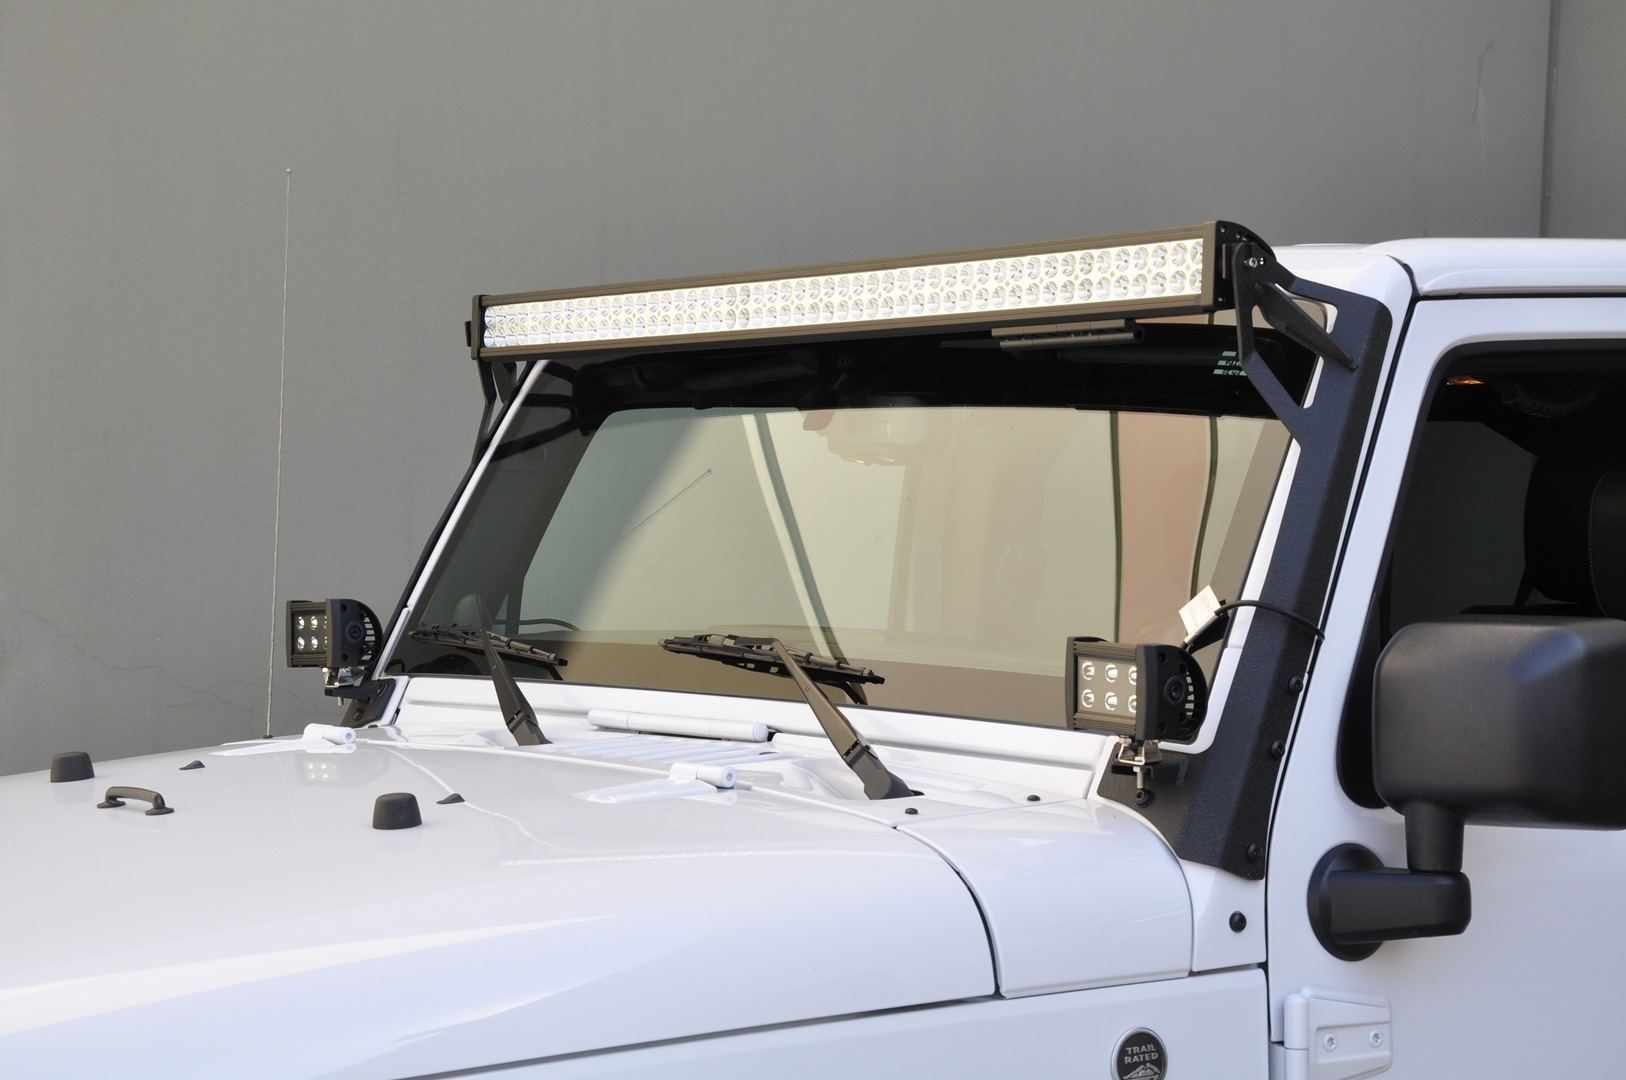 Dv8 off road l 5 light bar mount jeep accessories jk motorsports dv8 off road l 5 light bar mount aloadofball Choice Image